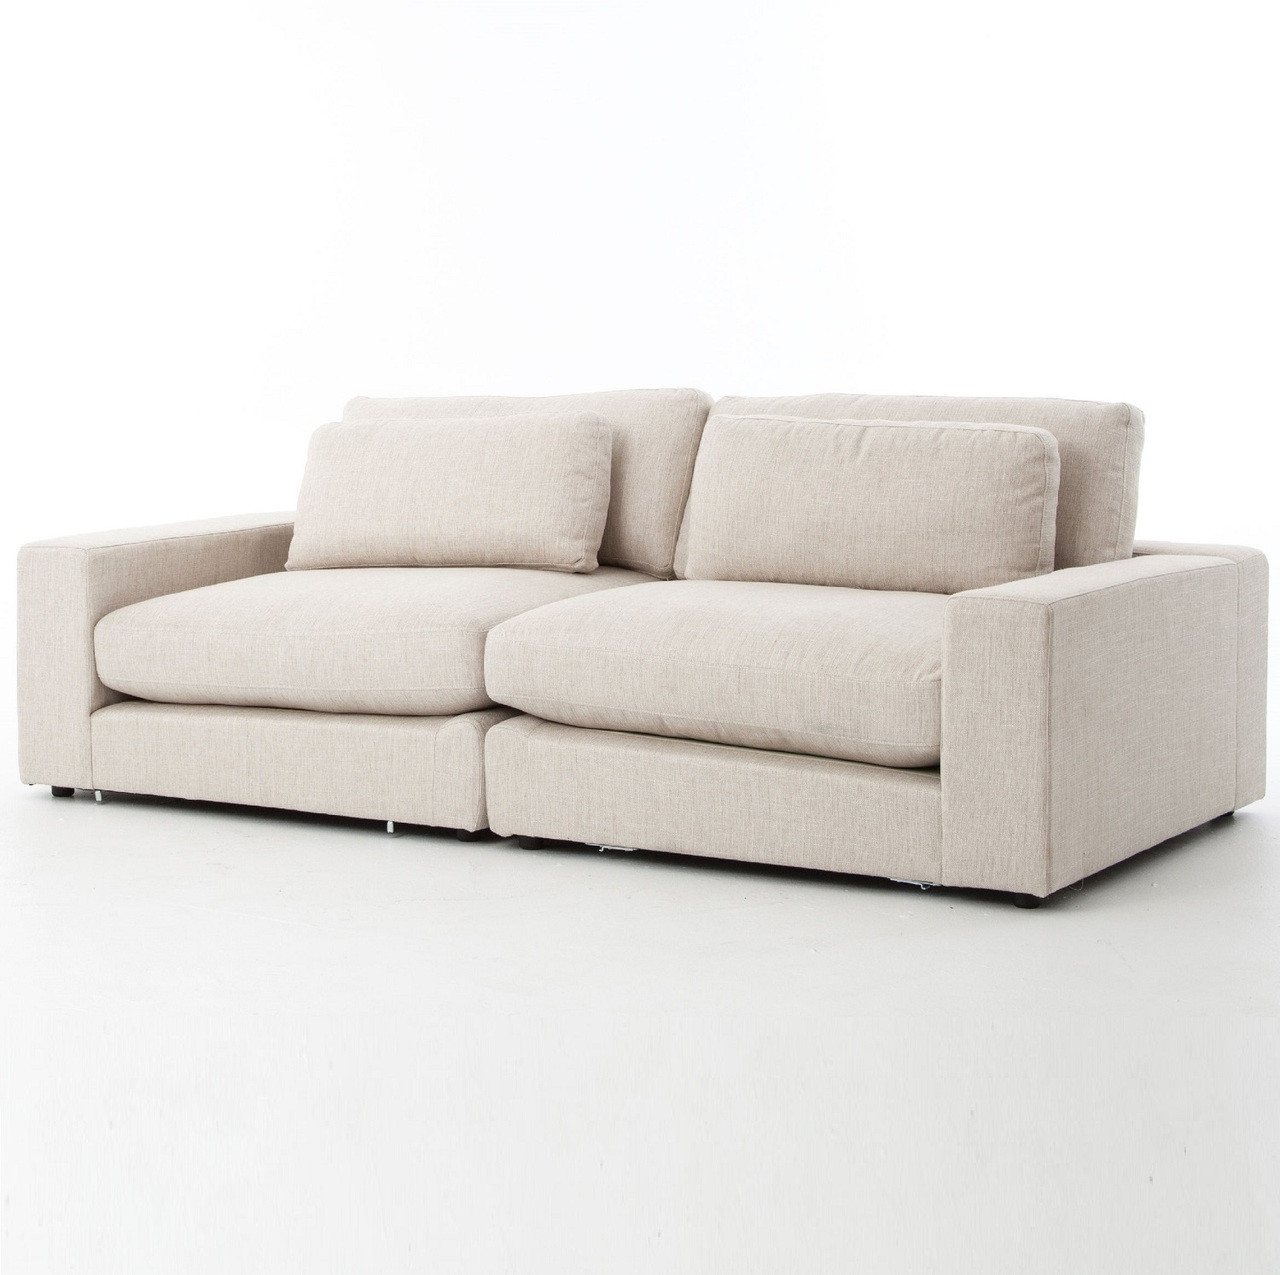 Bloor Beige Upholstered Contemporary 2 Seater Sofa 92\